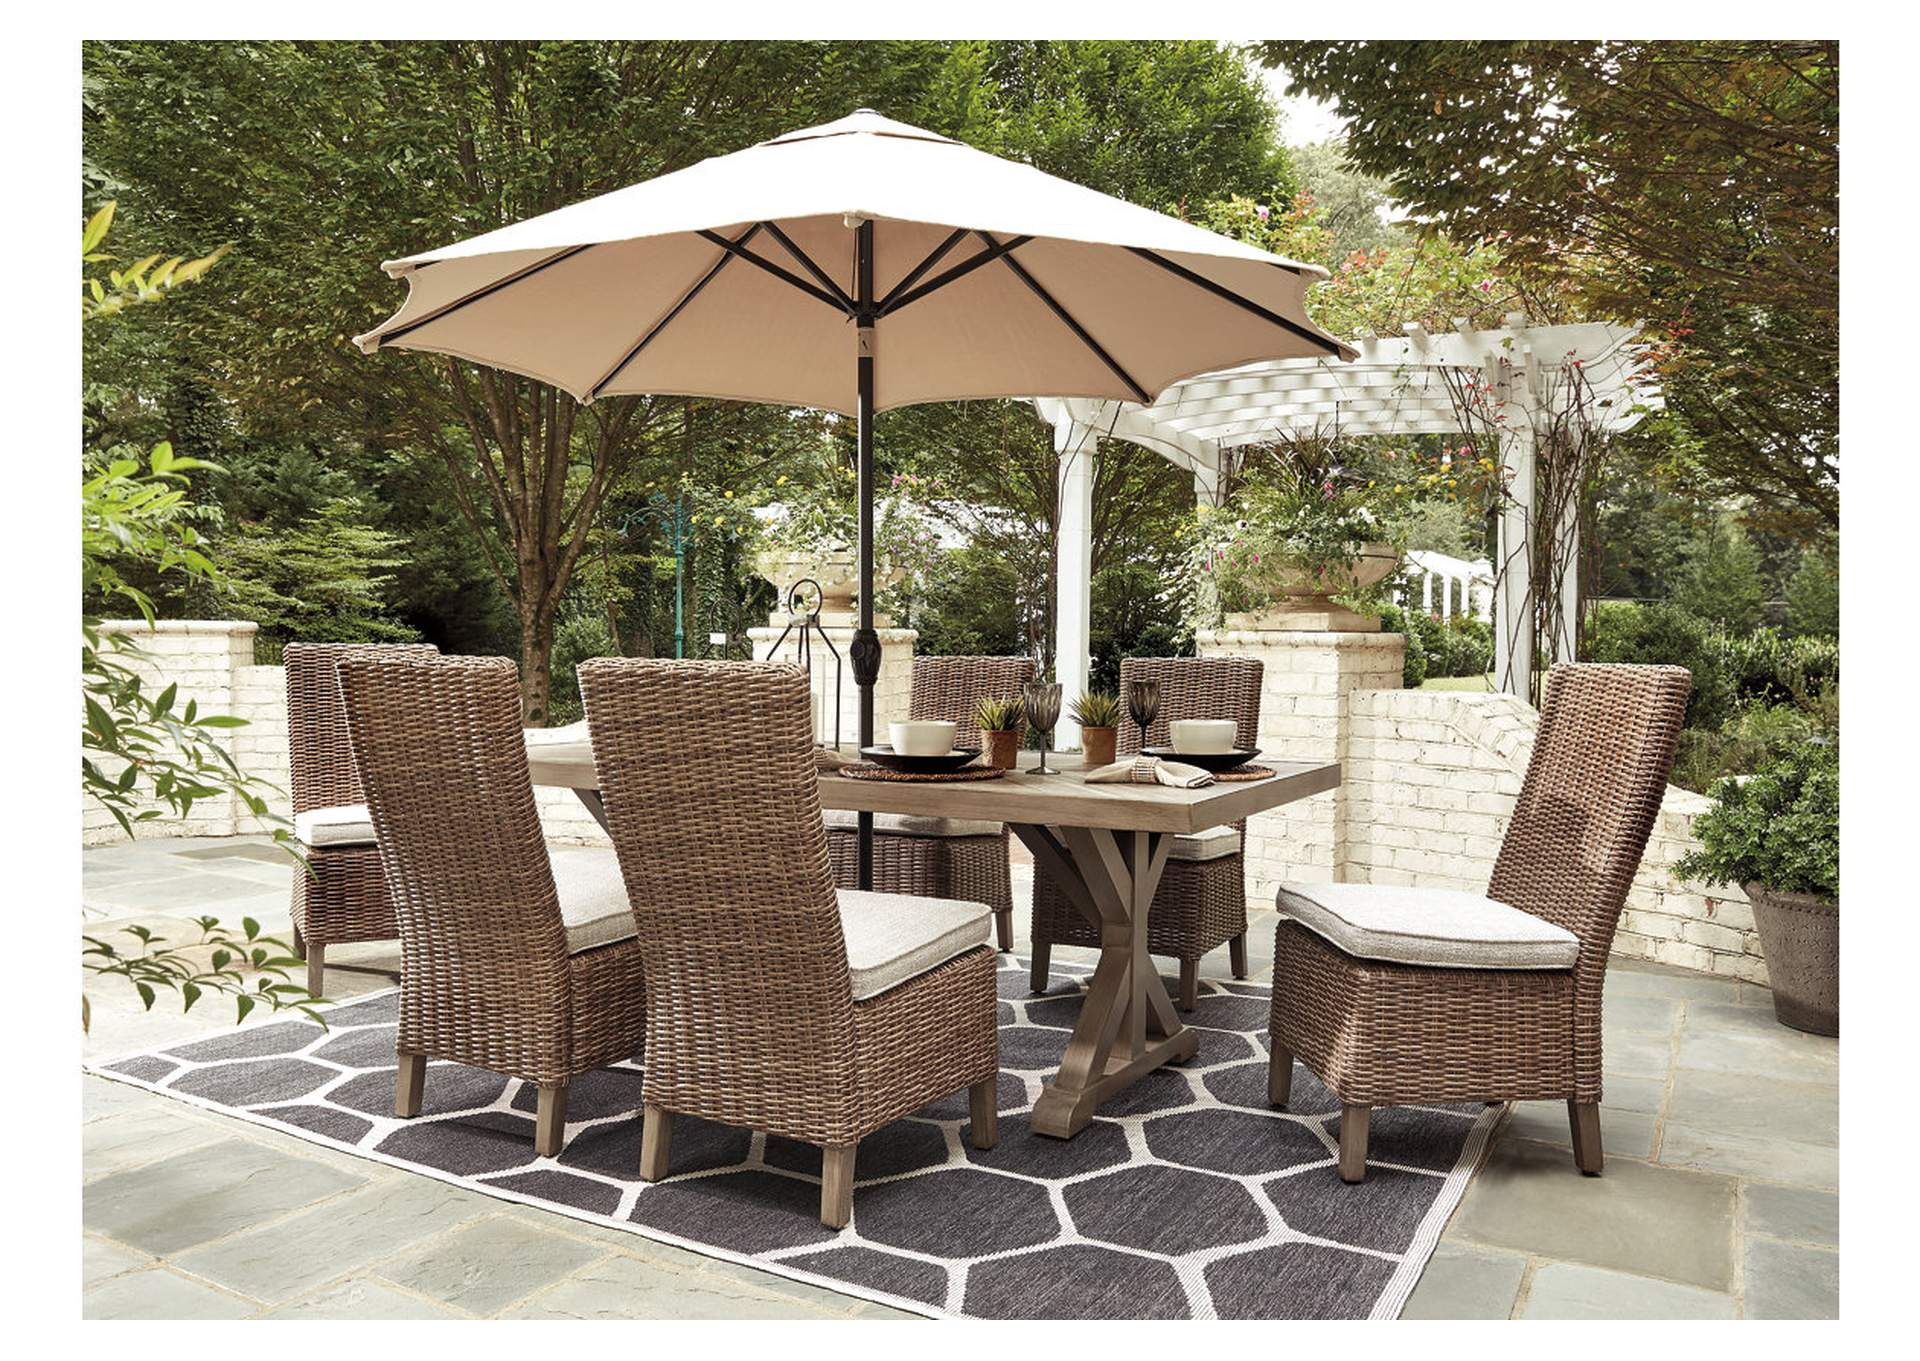 Beachcroft Beige Dining Table w/6 Side Chairs Ivan Smith on Beachcroft Beige Outdoor Living Room Set  id=58854